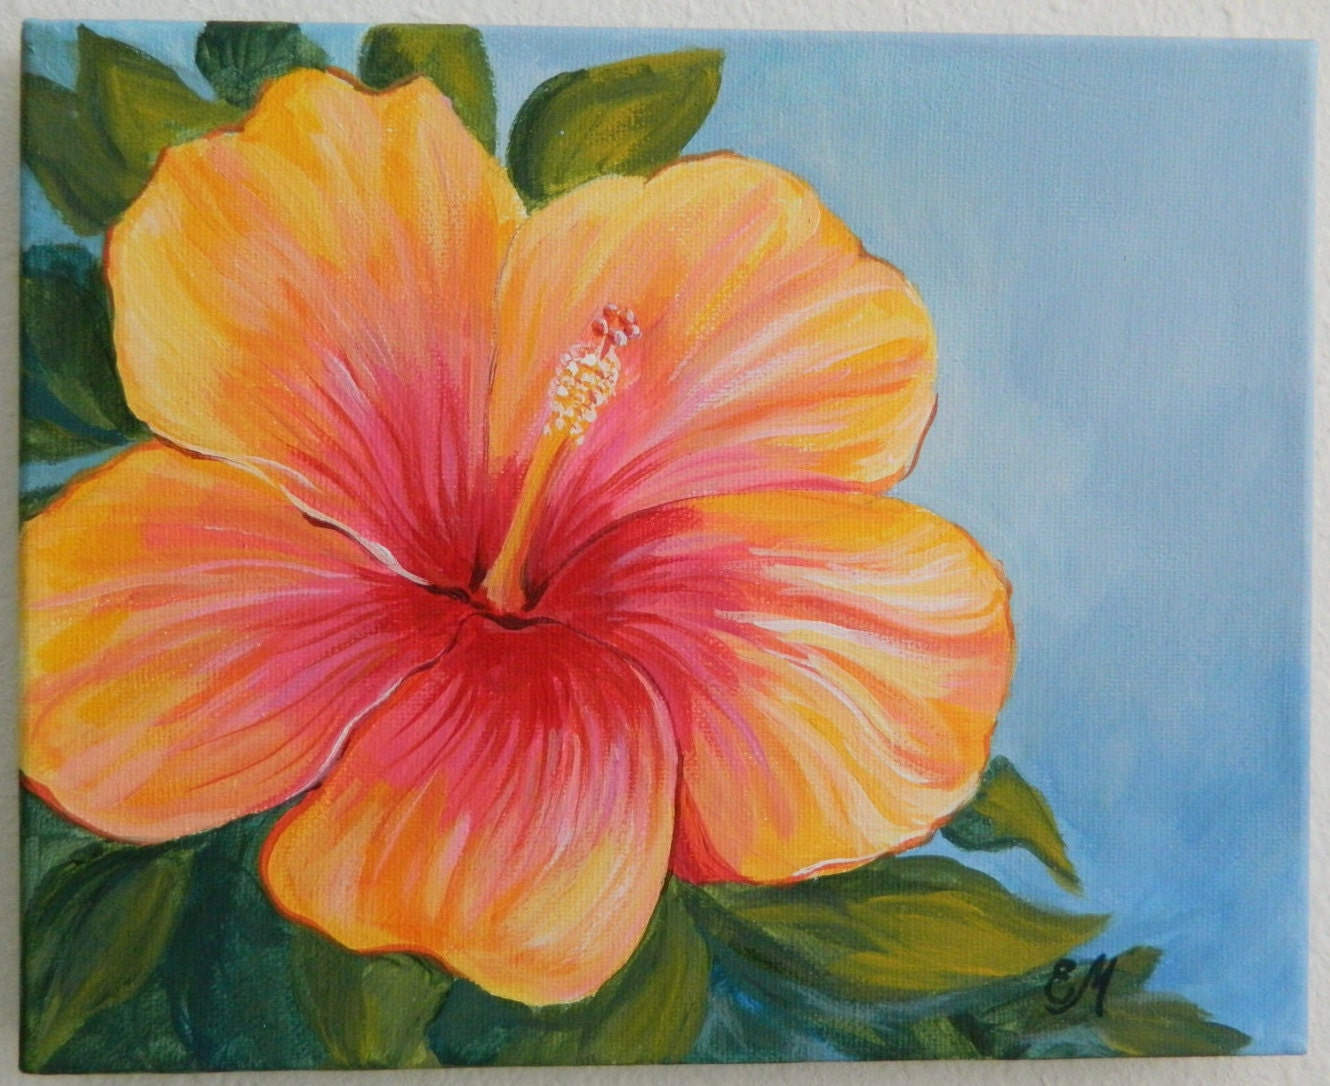 Hibiscus Flower Painting Images